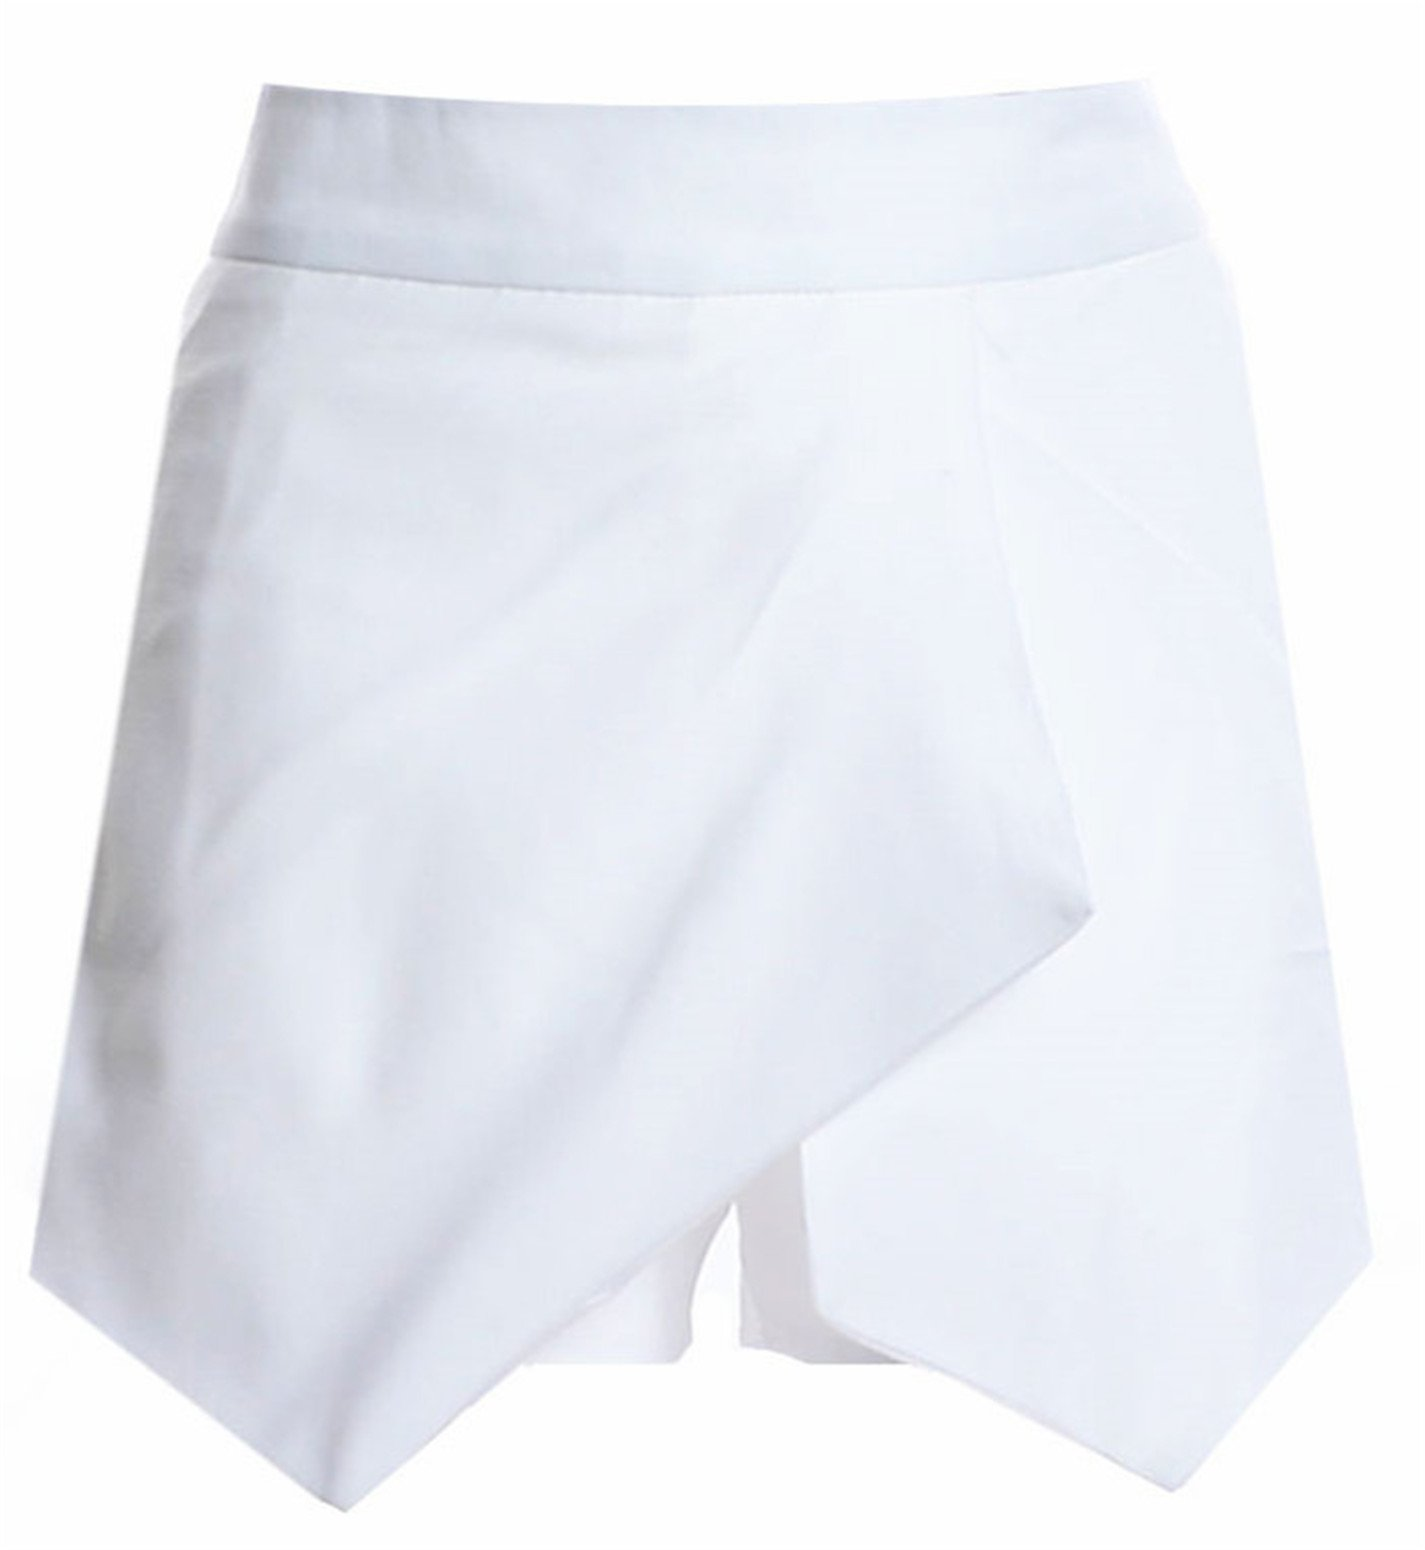 Highwaist Cross Wrap Front Skirted Skirt Shorts Hotpants Hot Pants White S